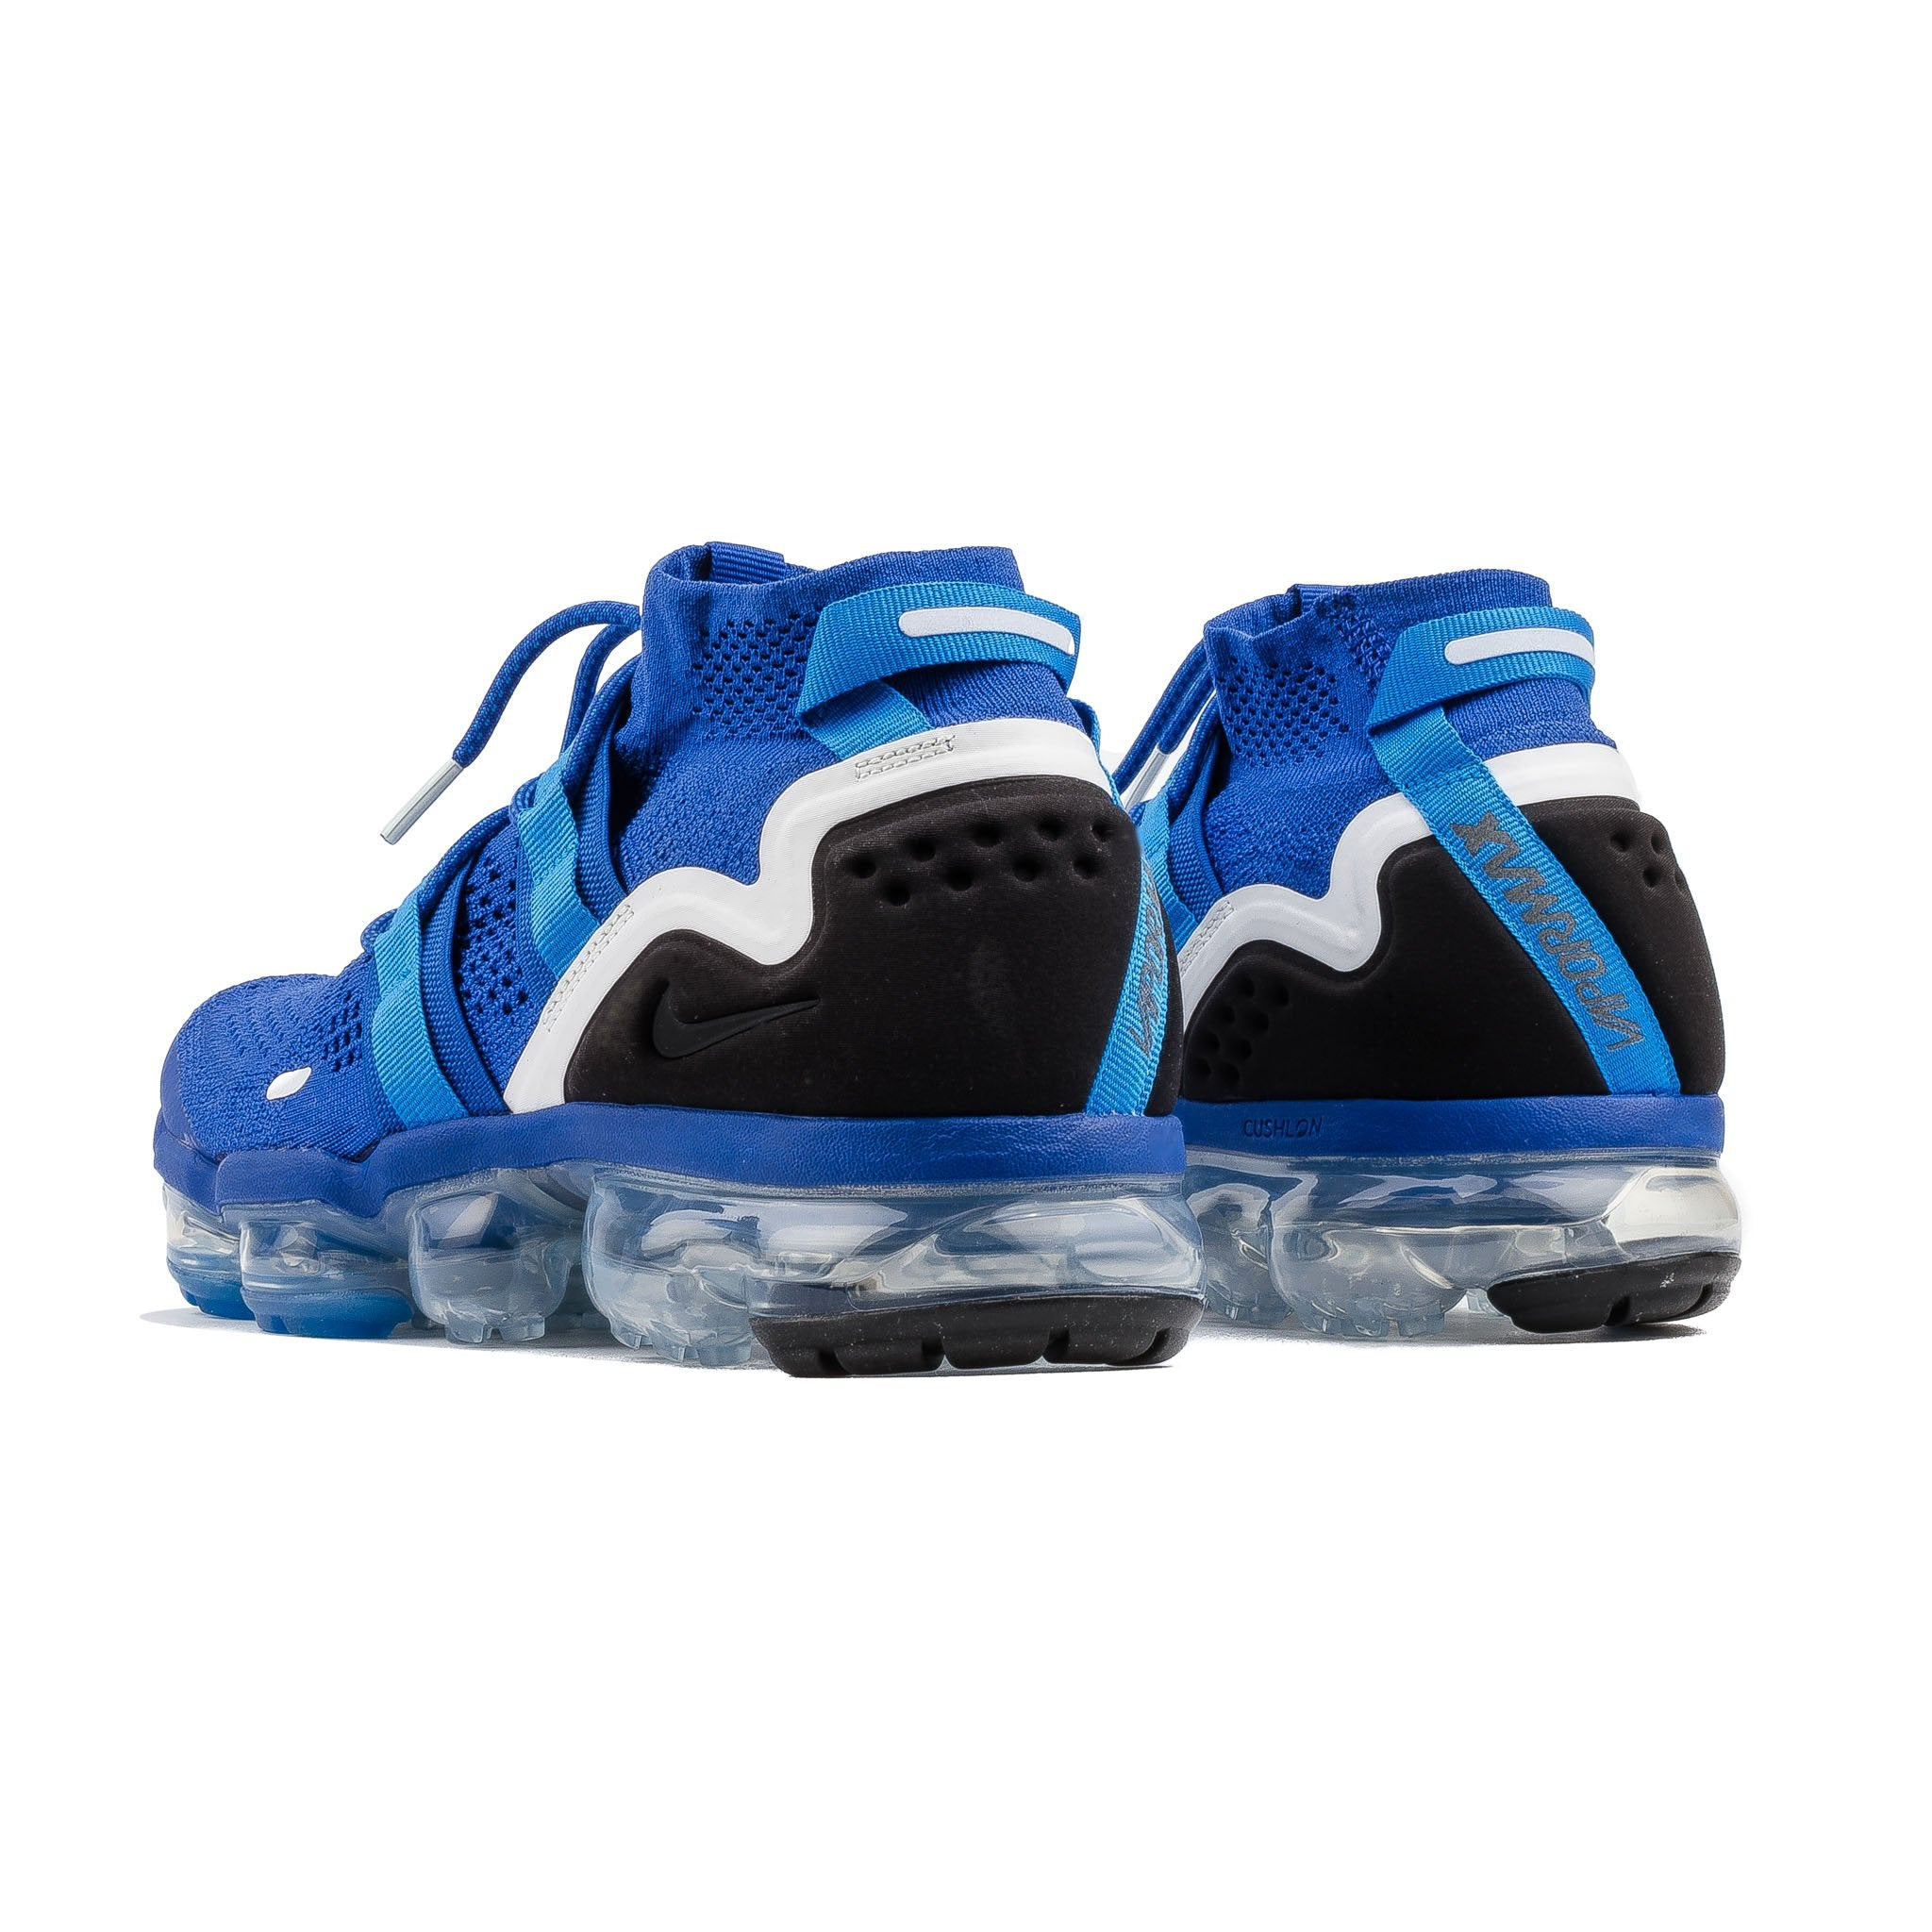 Air Vapormax FK Utility AH6834-400 Game Royal